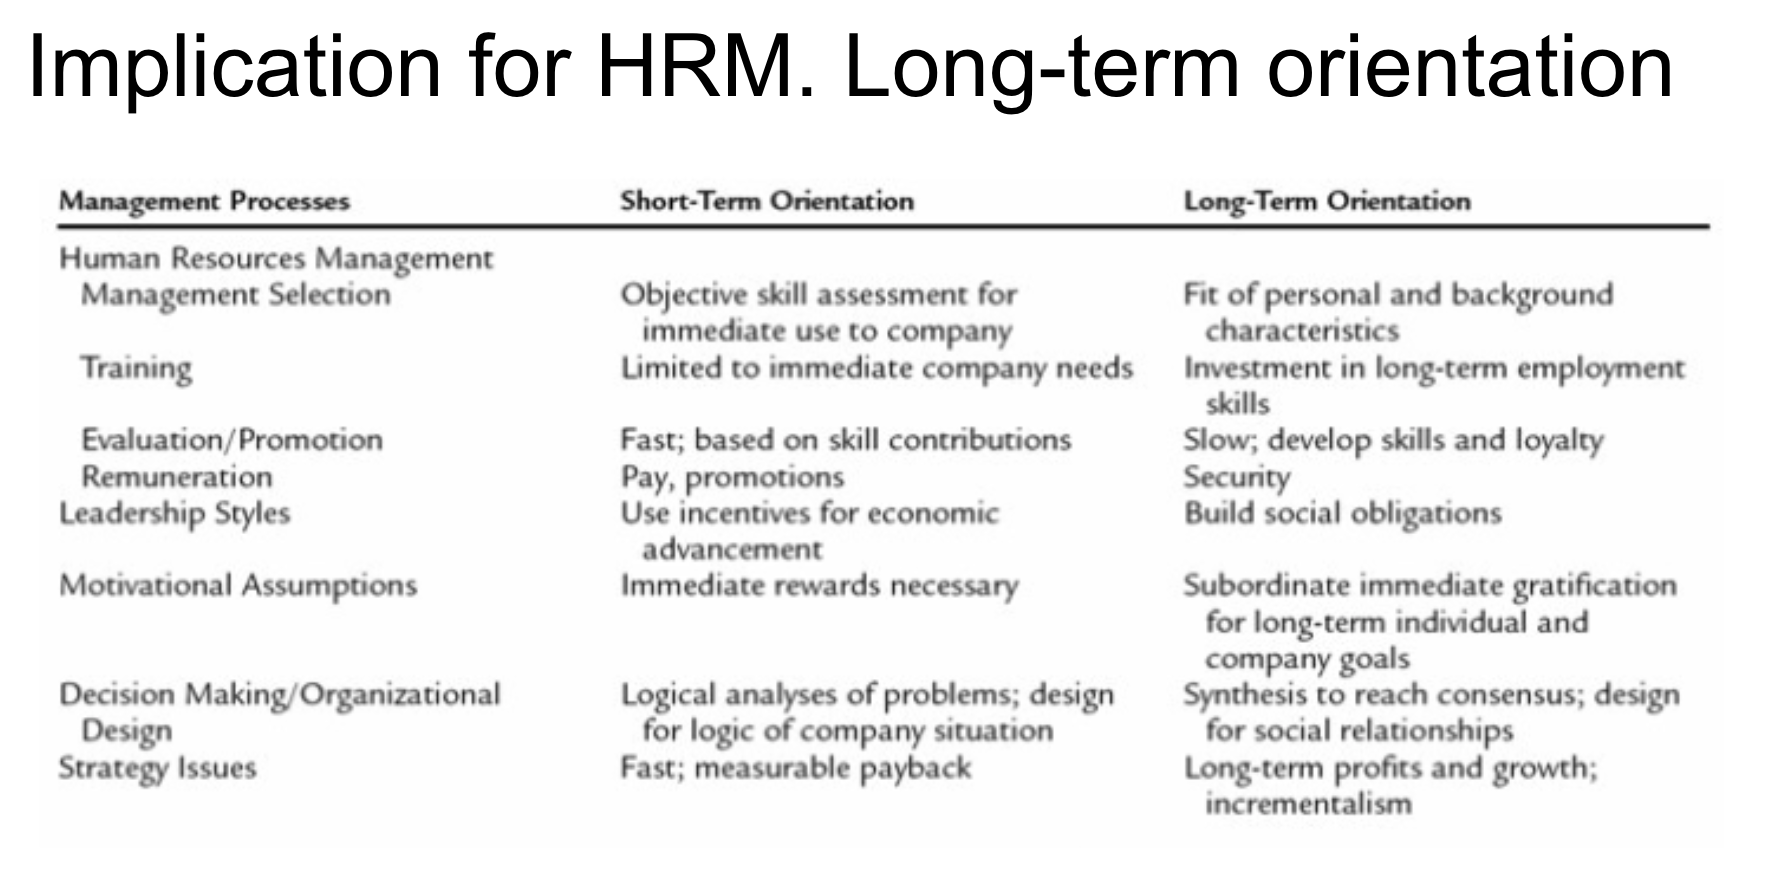 HRm and Long-term orientation